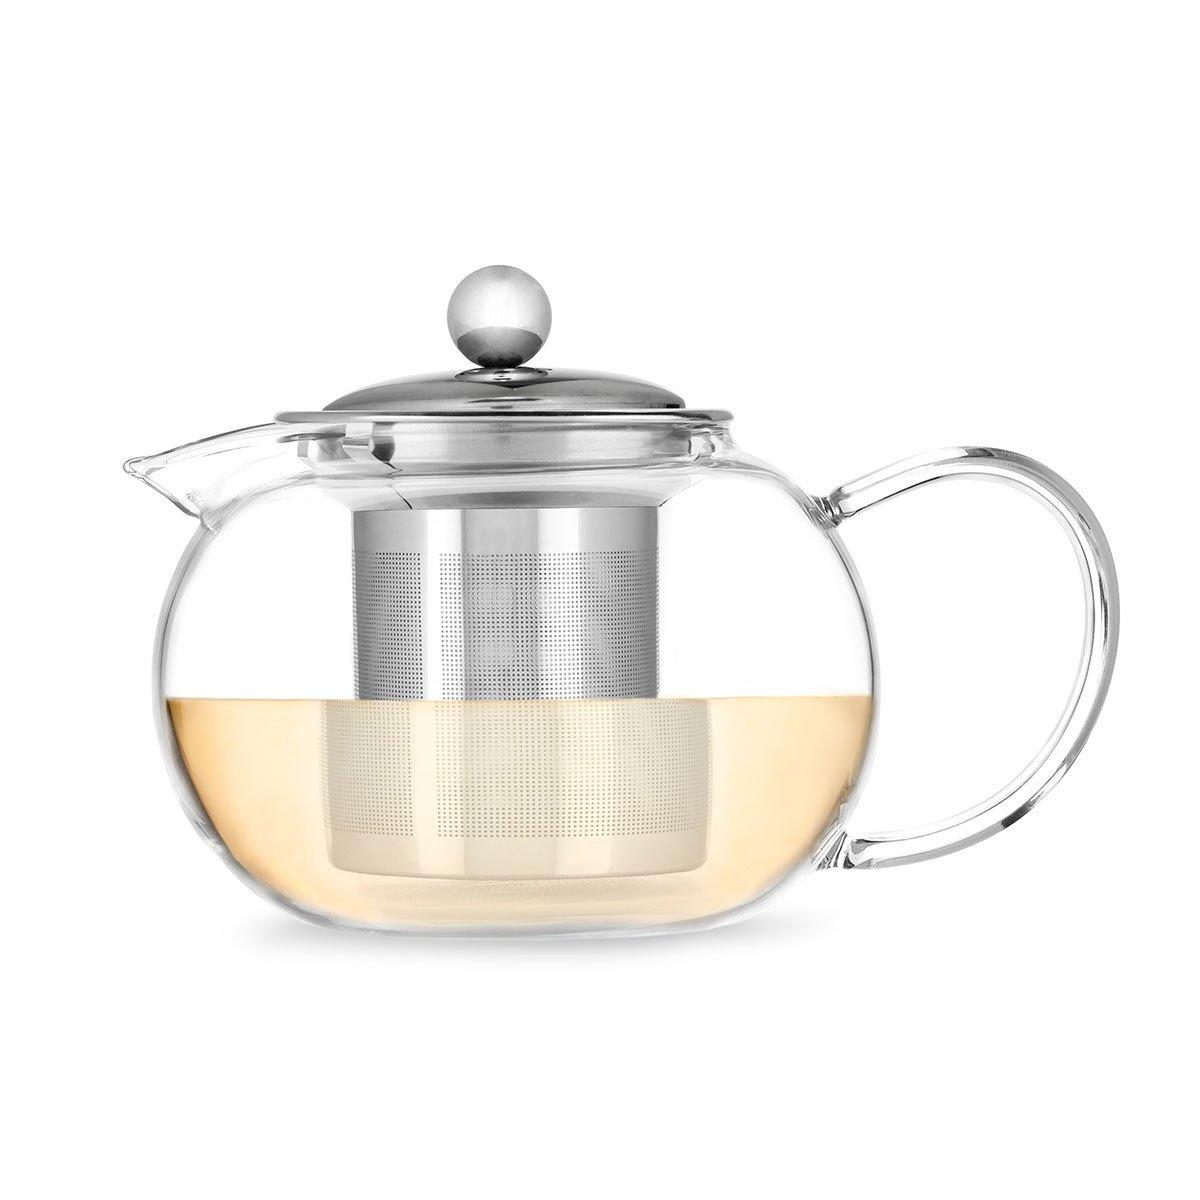 Candace 800ml Glass Teapot and Infuser - Only £29.99